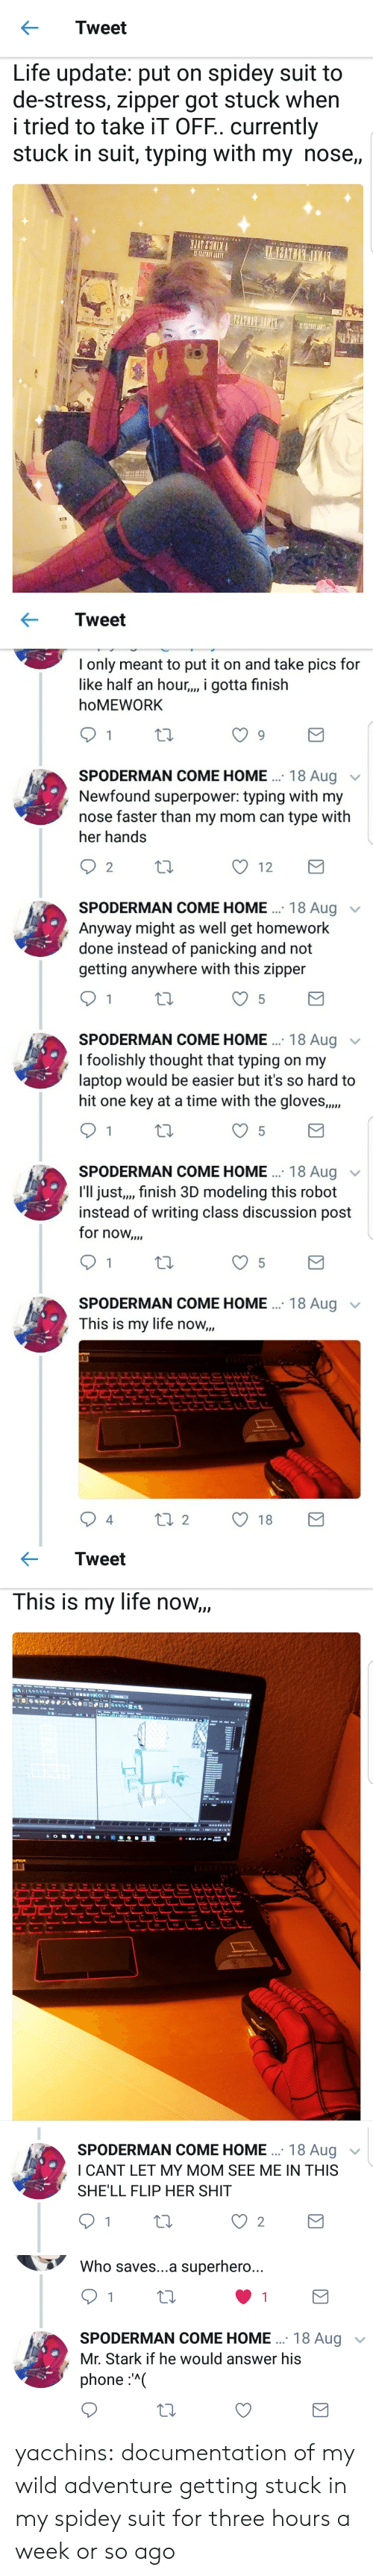 Life, Phone, and Shit: Tweet  Life update: put on spidey suit to  de-stress, zipper got stuck when  i tried to take iT OFF. currently  stuck in suit, typing with my nose,,   Tweet  I only meant to put it on and take pics for  like half an hour.,, i gotta finish  hoMEWORK  SPODERMAN COME HOME .. 18 Aug v  Newfound superpower: typing with my  nose faster than my mom can type with  her hands  2  12  SPODERMAN COME HOME . 18 Aug  Anyway might as well get homework  done instead of panicking and not  getting anywhere with this zipper  SPODERMAN COME HOME 18 Aug  I foolishly thought that typing on my  laptop would be easier but it's so hard to  hit one key at a time with the gloves.,.  SPODERMAN COME HOME. 18 Aug  I'll just,,, finish 3D modeling this robot  instead of writing class discussion post  for now,..  SPODERMAN COME HOME .  This is my life now,,  18 Aug  4   ← Tweet  This is my life now   SPODERMAN COME HOME.. 18 Augv  ICANT LET MY MOM SEE ME IN THIS  SHE'LL FLIP HER SHIT  2   Who saves...a superhero..  SPODERMAN COME HOME. 18 Aug  Mr. Stark if he would answer his  phone:'( yacchins: documentation of my wild adventure getting stuck in my spidey suit for three hours a week or so ago